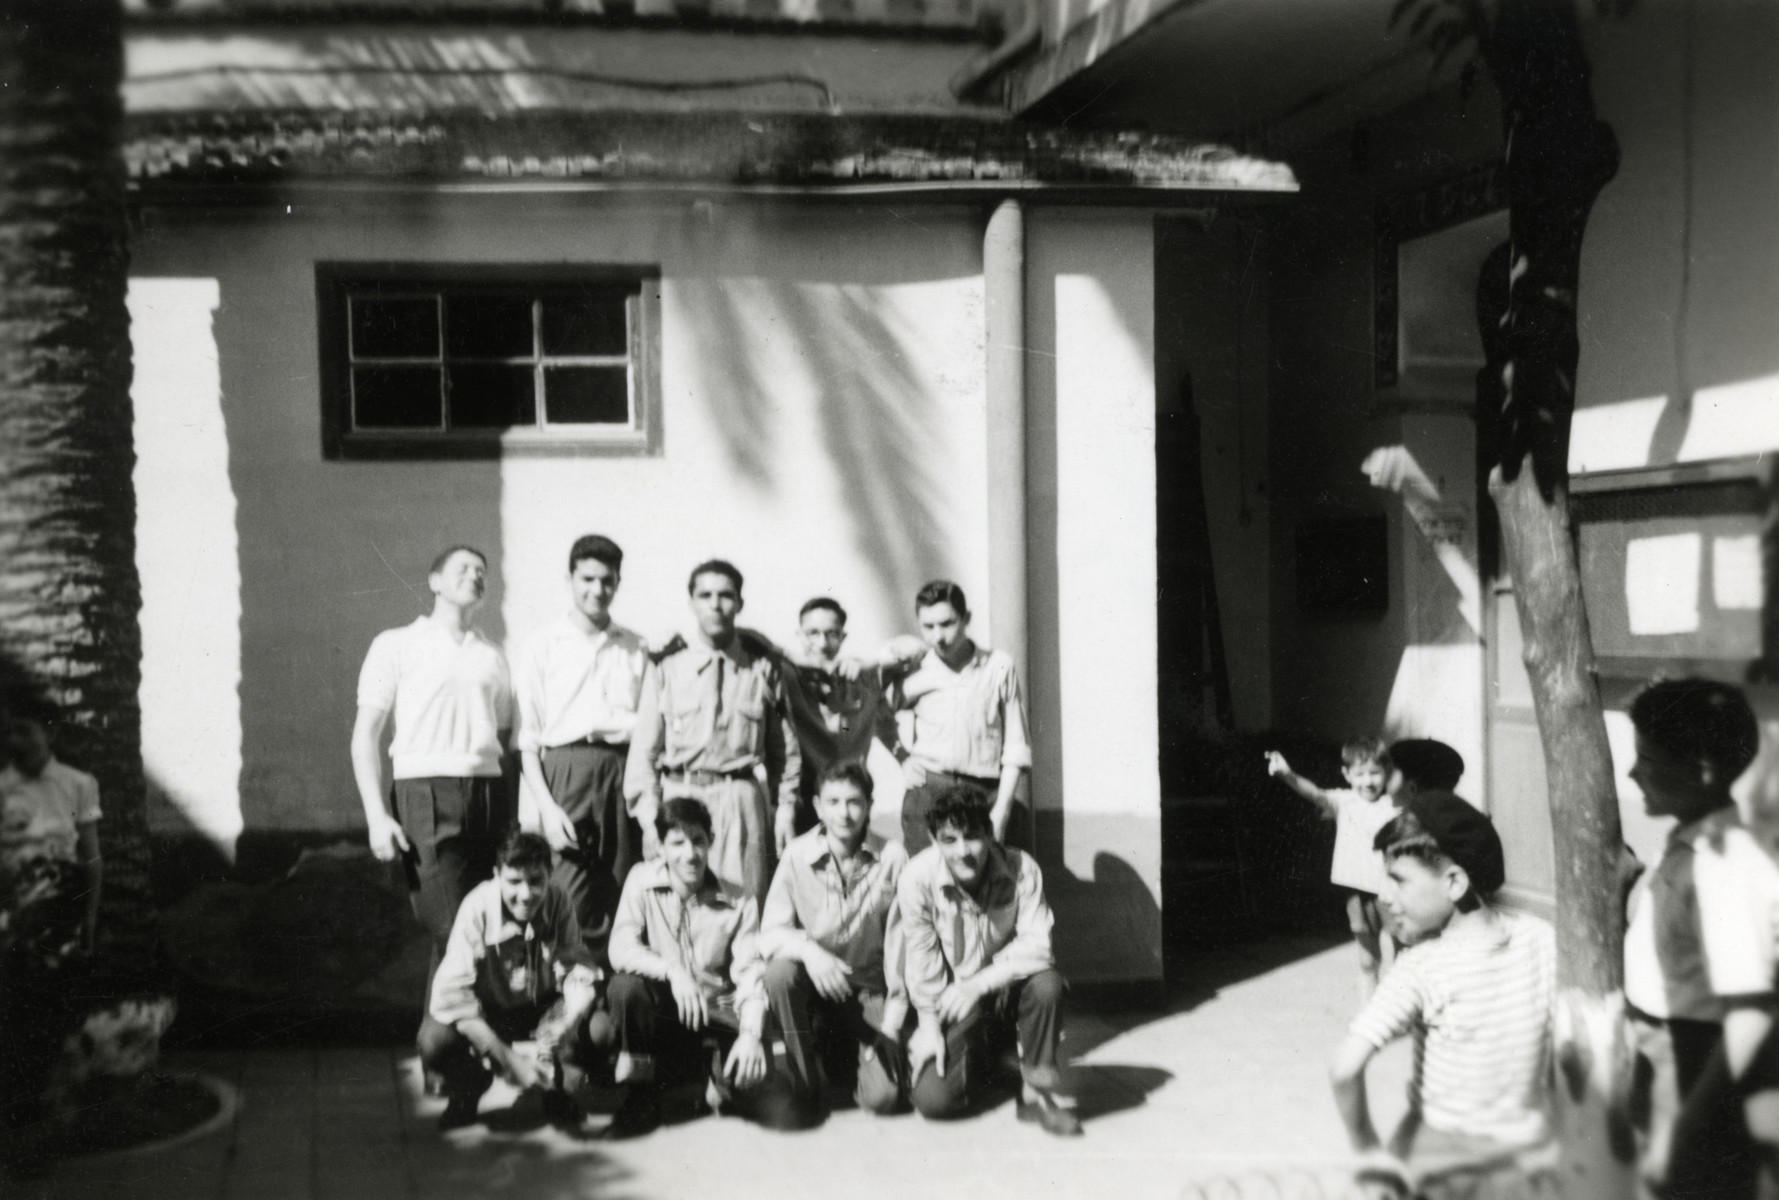 Group portrait of members of the Gordonia Zionist youth movement.